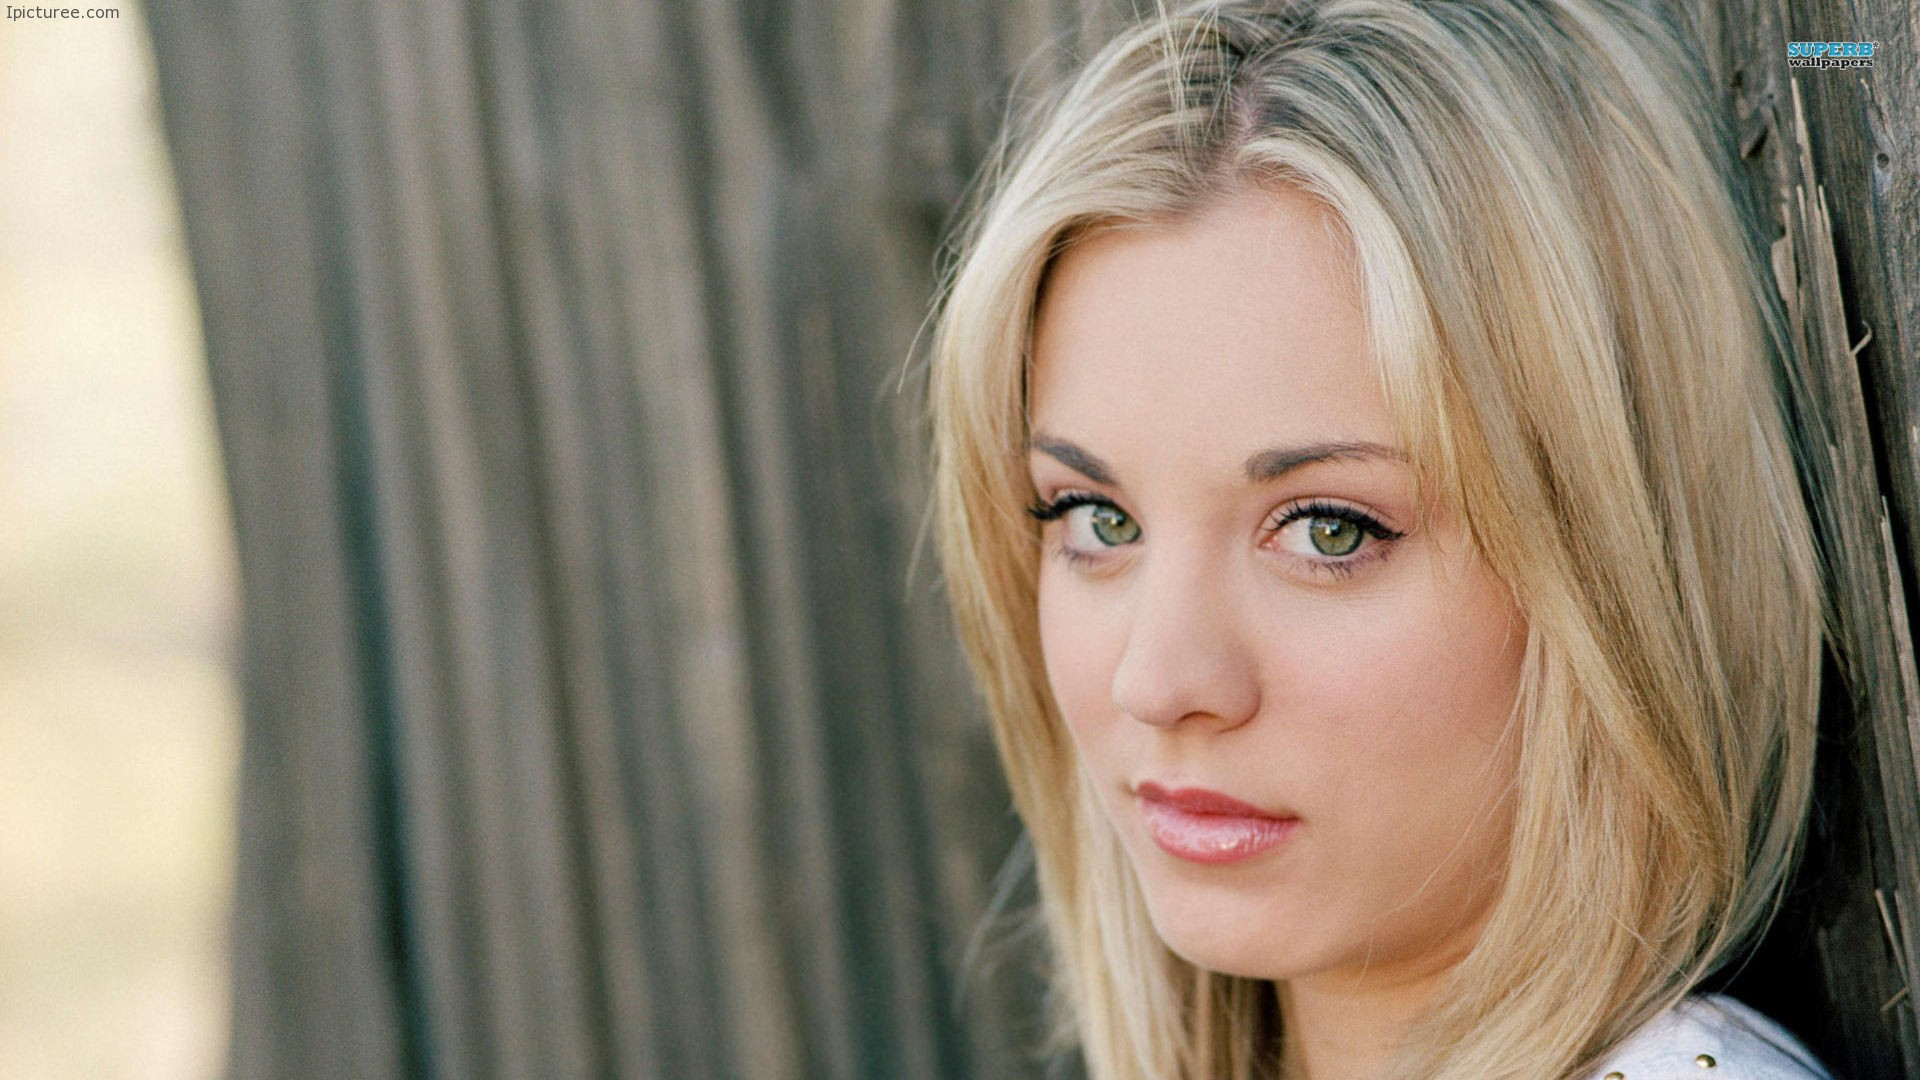 Kaley Cuoco Looking Serious